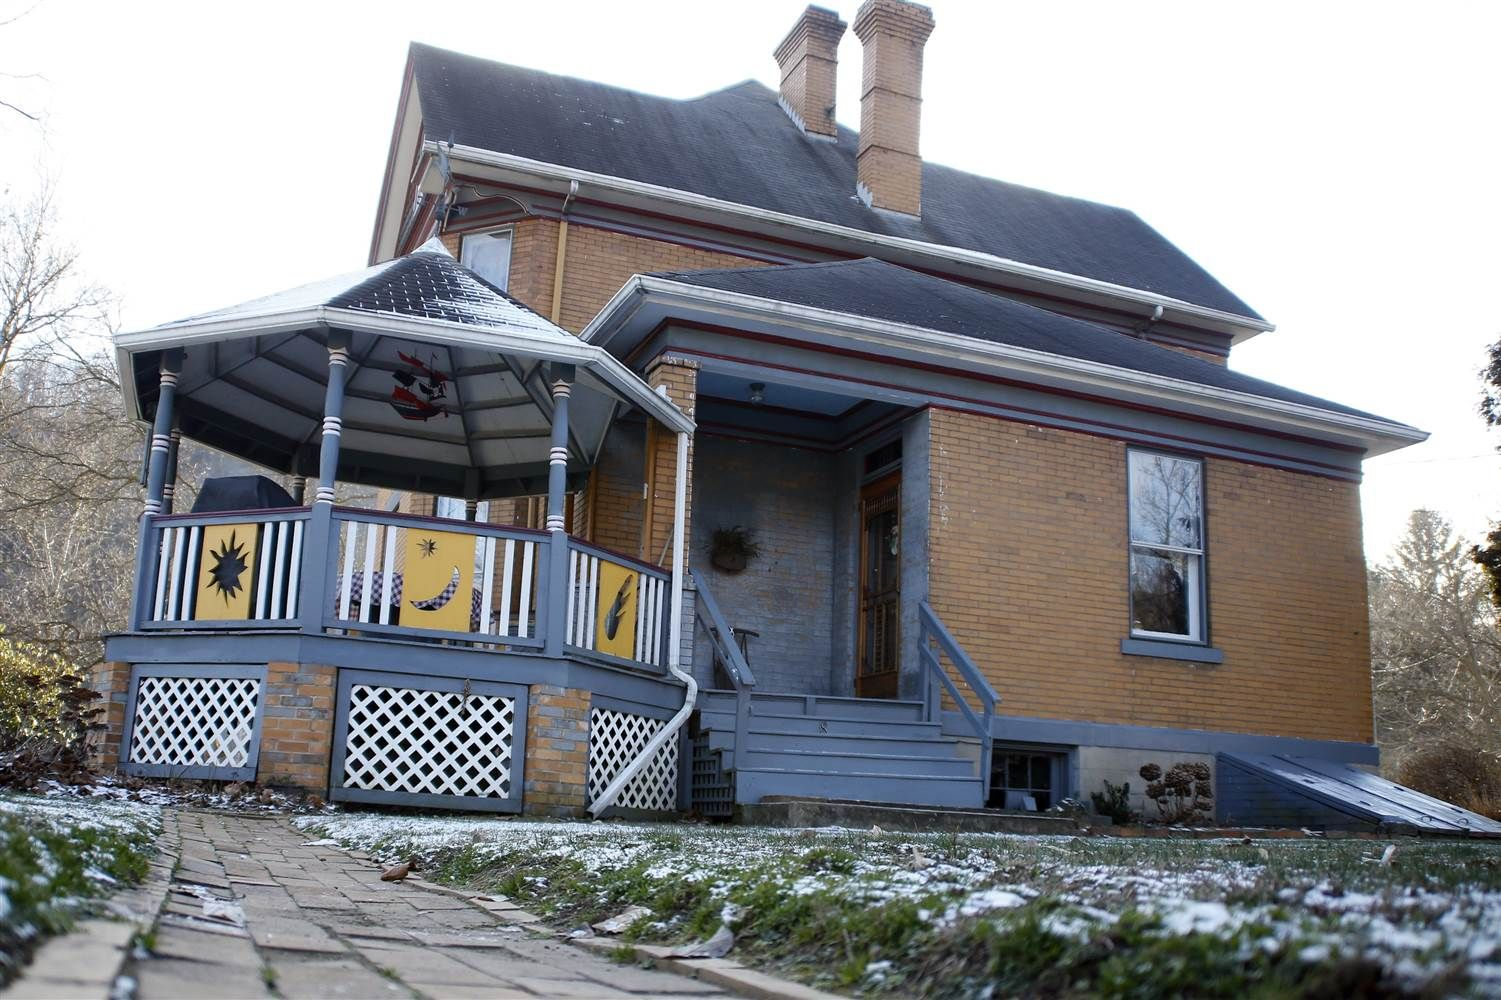 Pa. couple struggles to sell Silence of the Lambs house